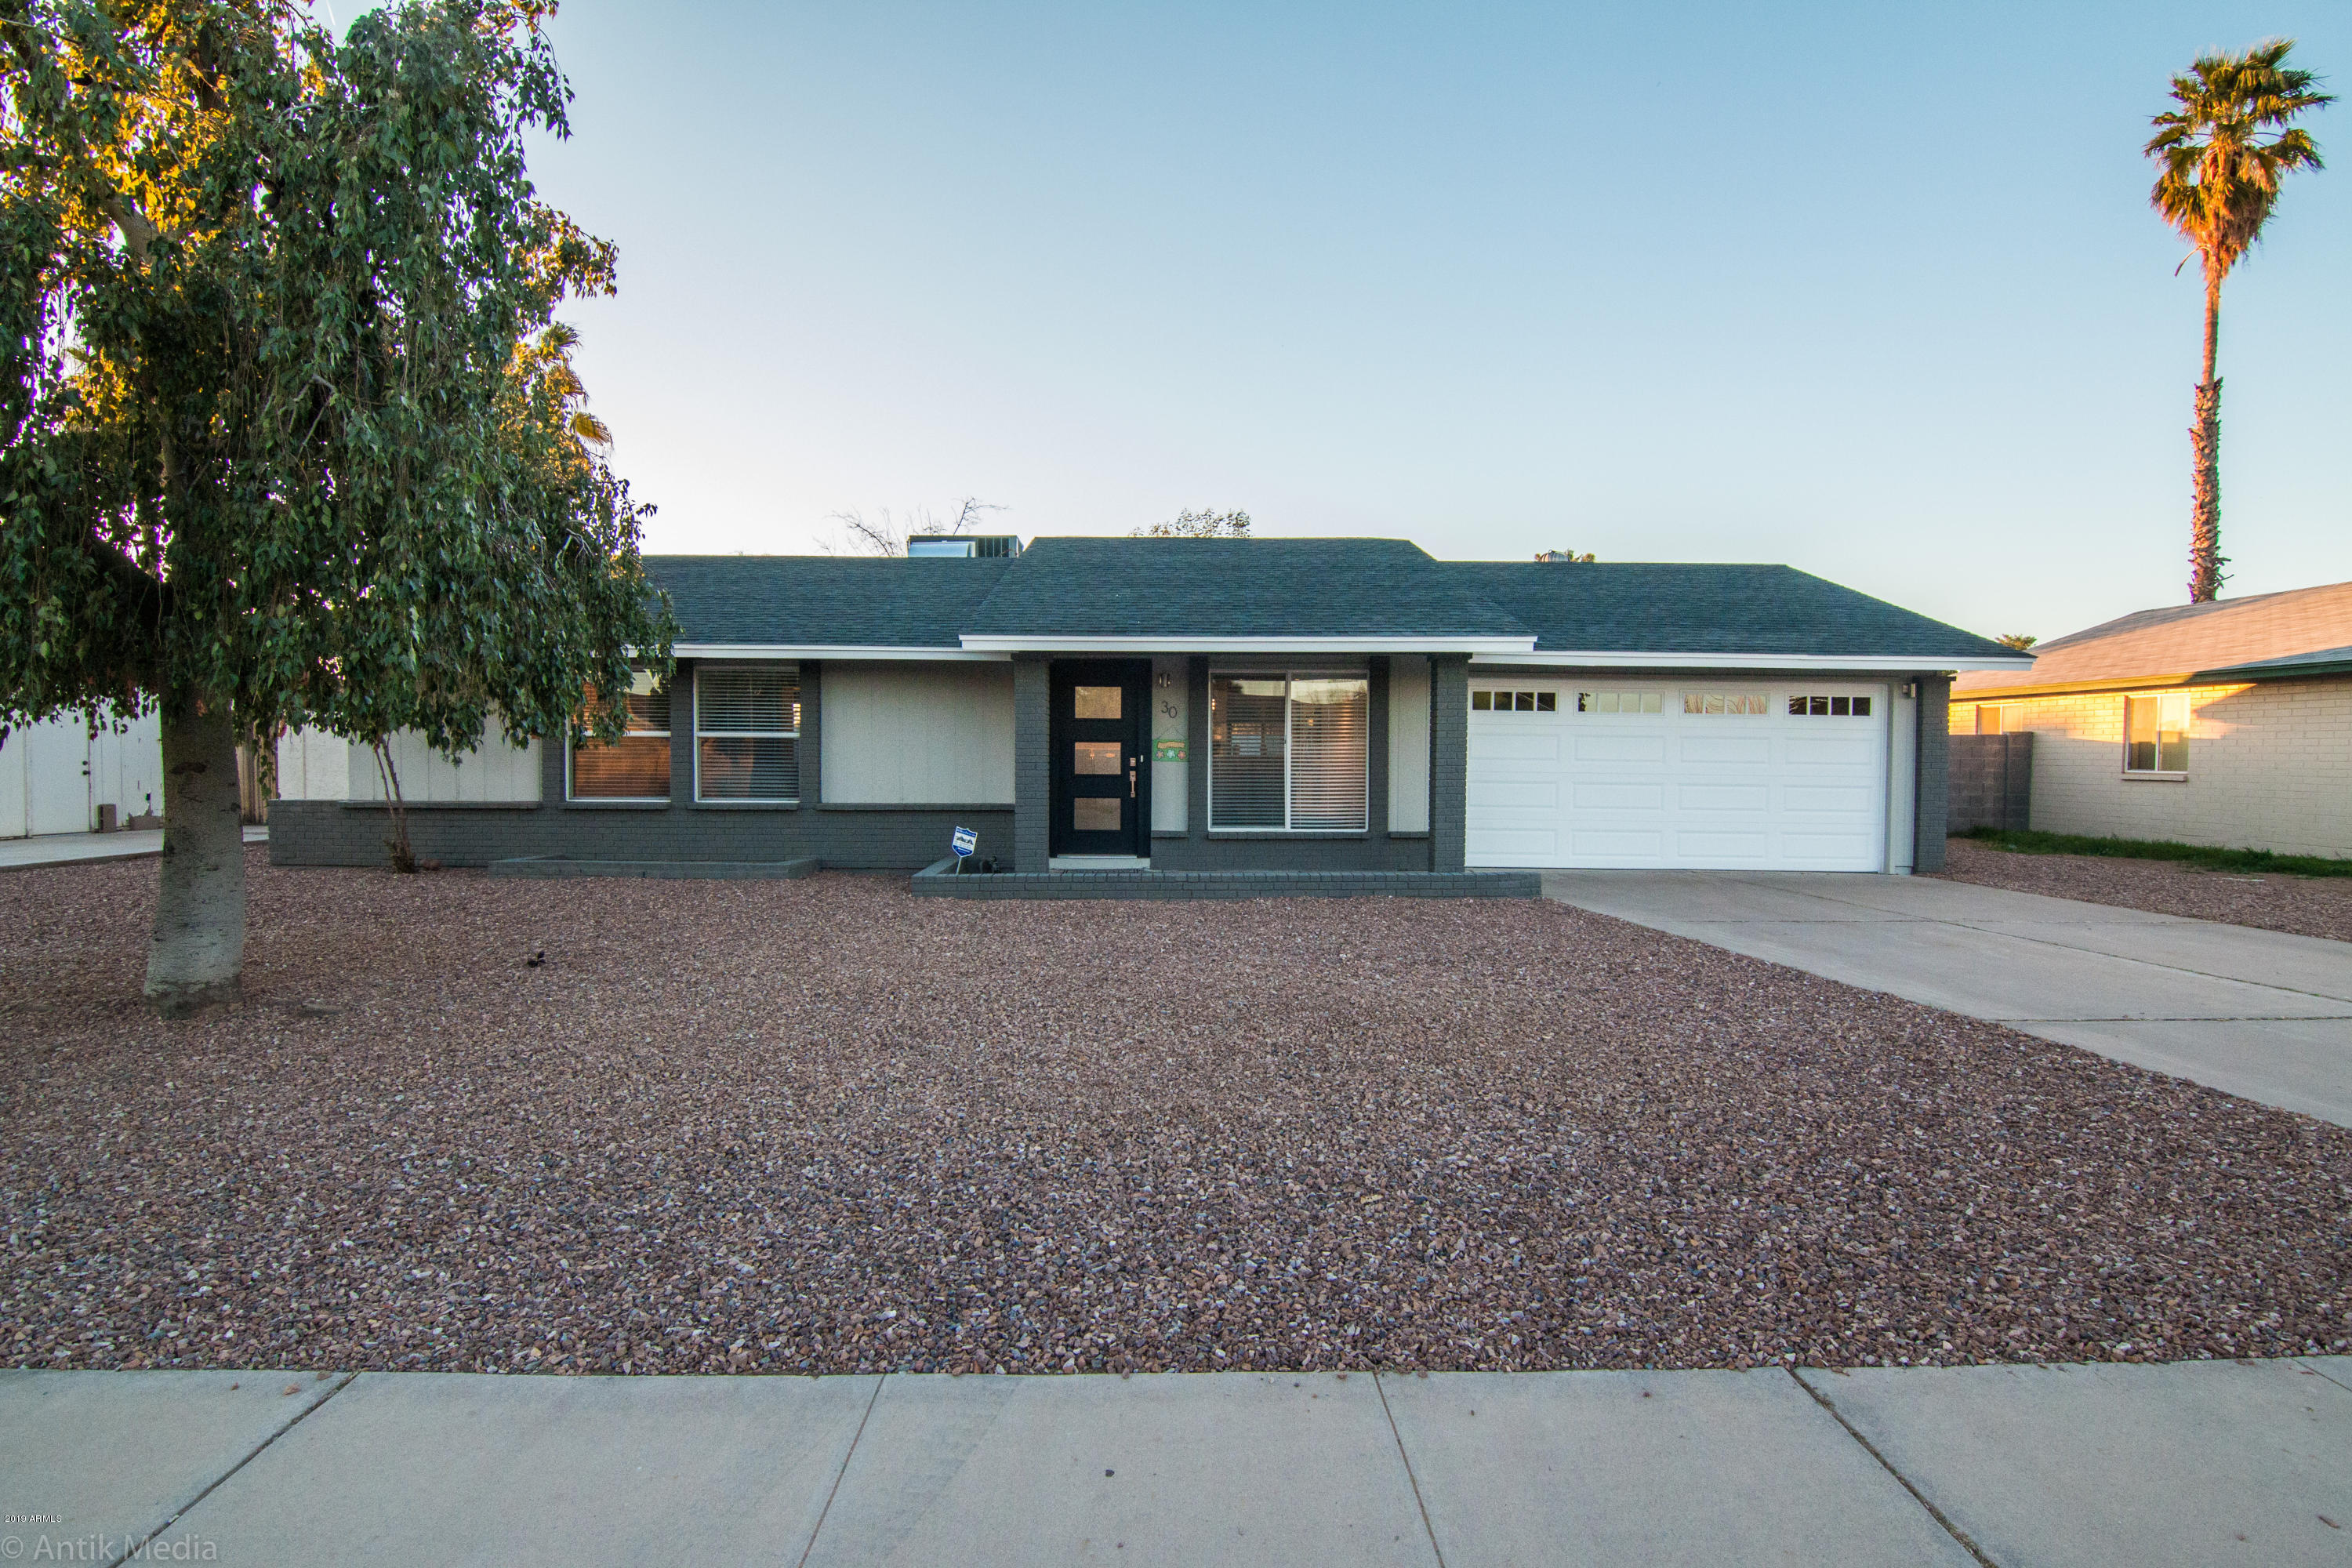 MLS 5946527 30 N 133RD Street, Chandler, AZ 85225 Chandler AZ Colonia Coronita